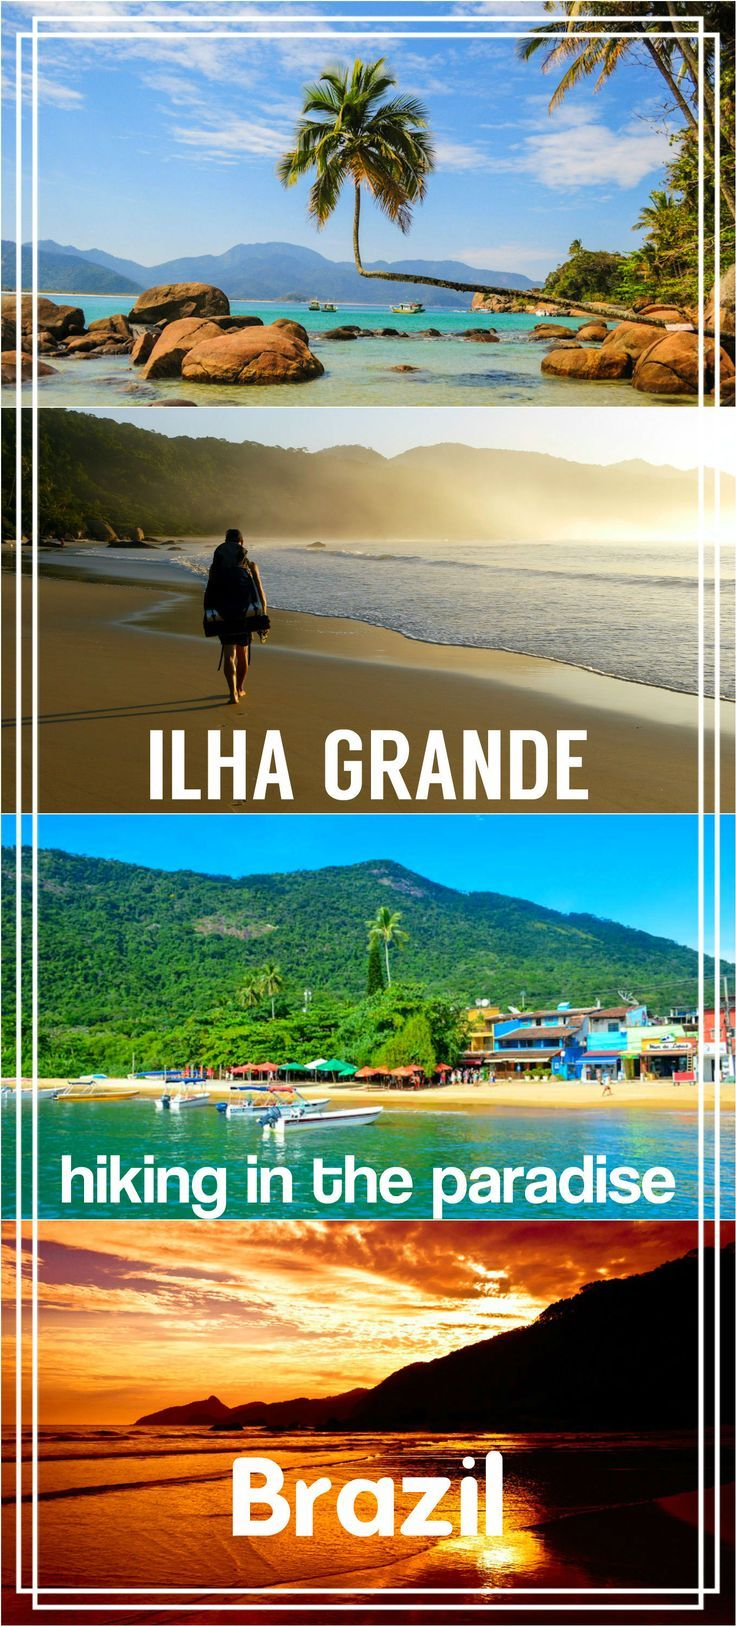 Ilha Grande, Rio de Janeiro, Brazil. Things to do, complete hiking guide, beach, Lagoa Azul, Lopes Mendes, Abraao, Aventureiro, camping, trails, walking around the island, map, route, 5 day hike, beautiful paradise island, snorkeling, trilhas. Travel Brazil.